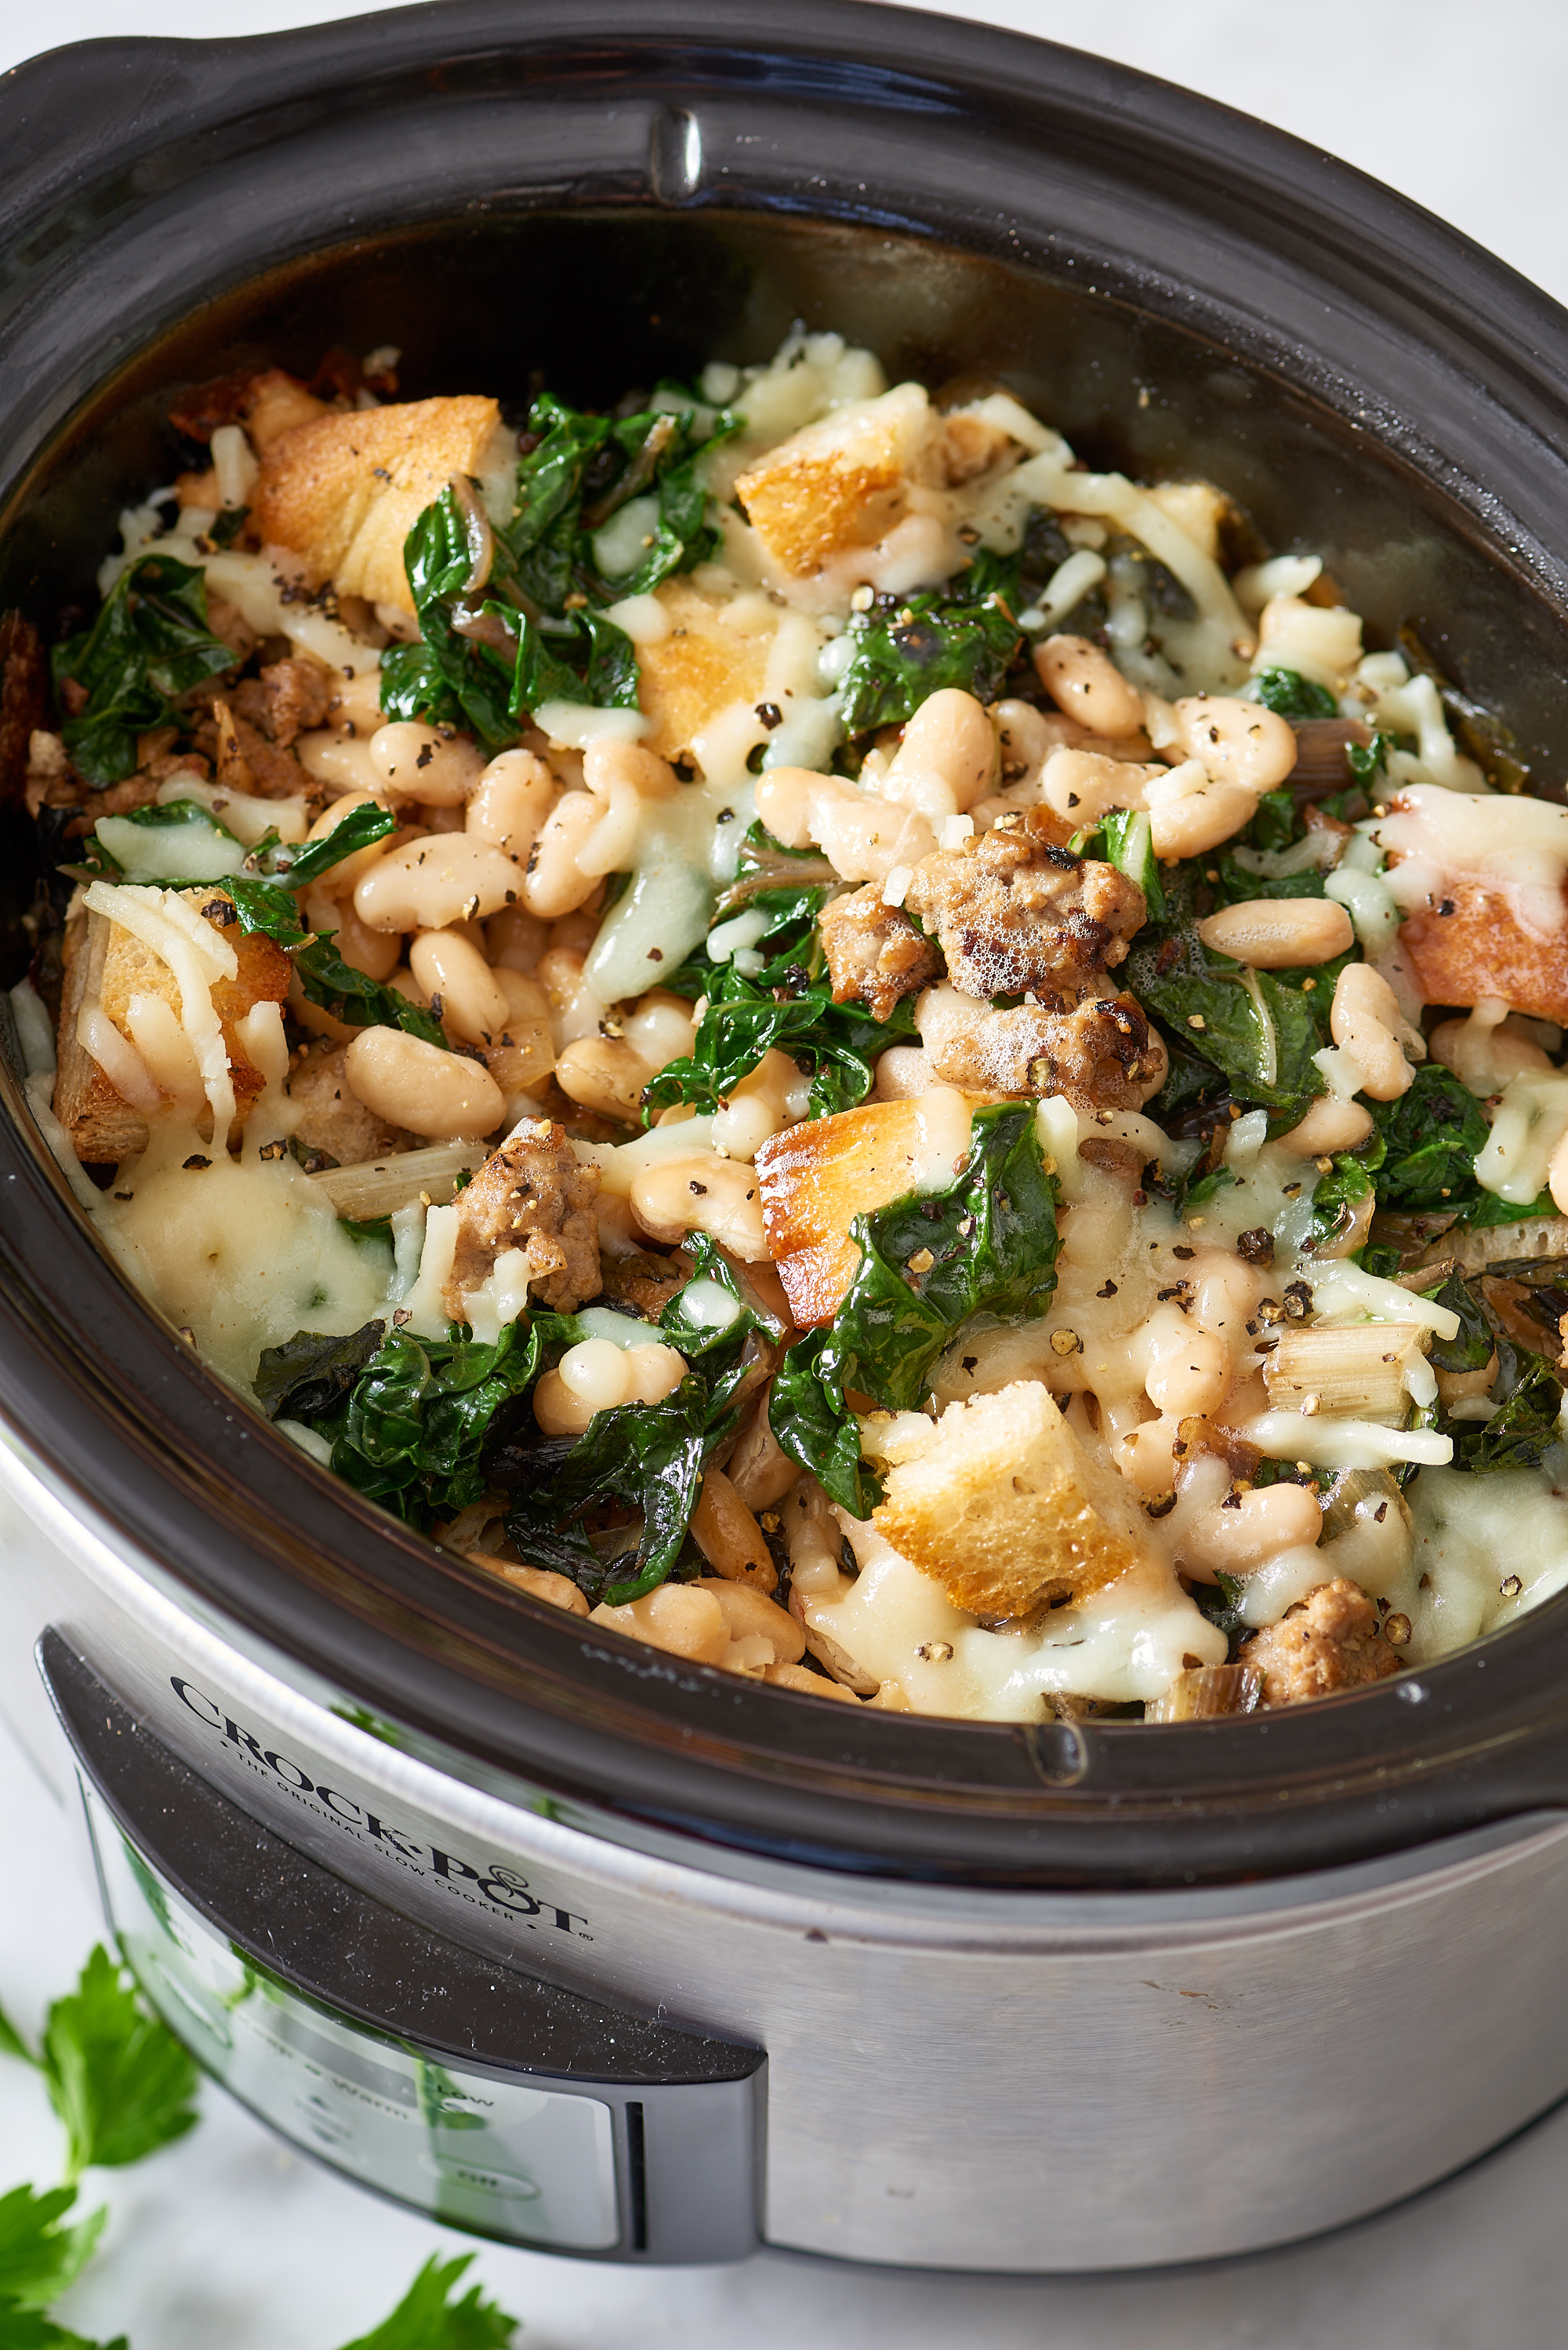 Slow Cooker Recipe: Cheesy Panade with Swiss Chard, Beans & Sausage | Kitchn